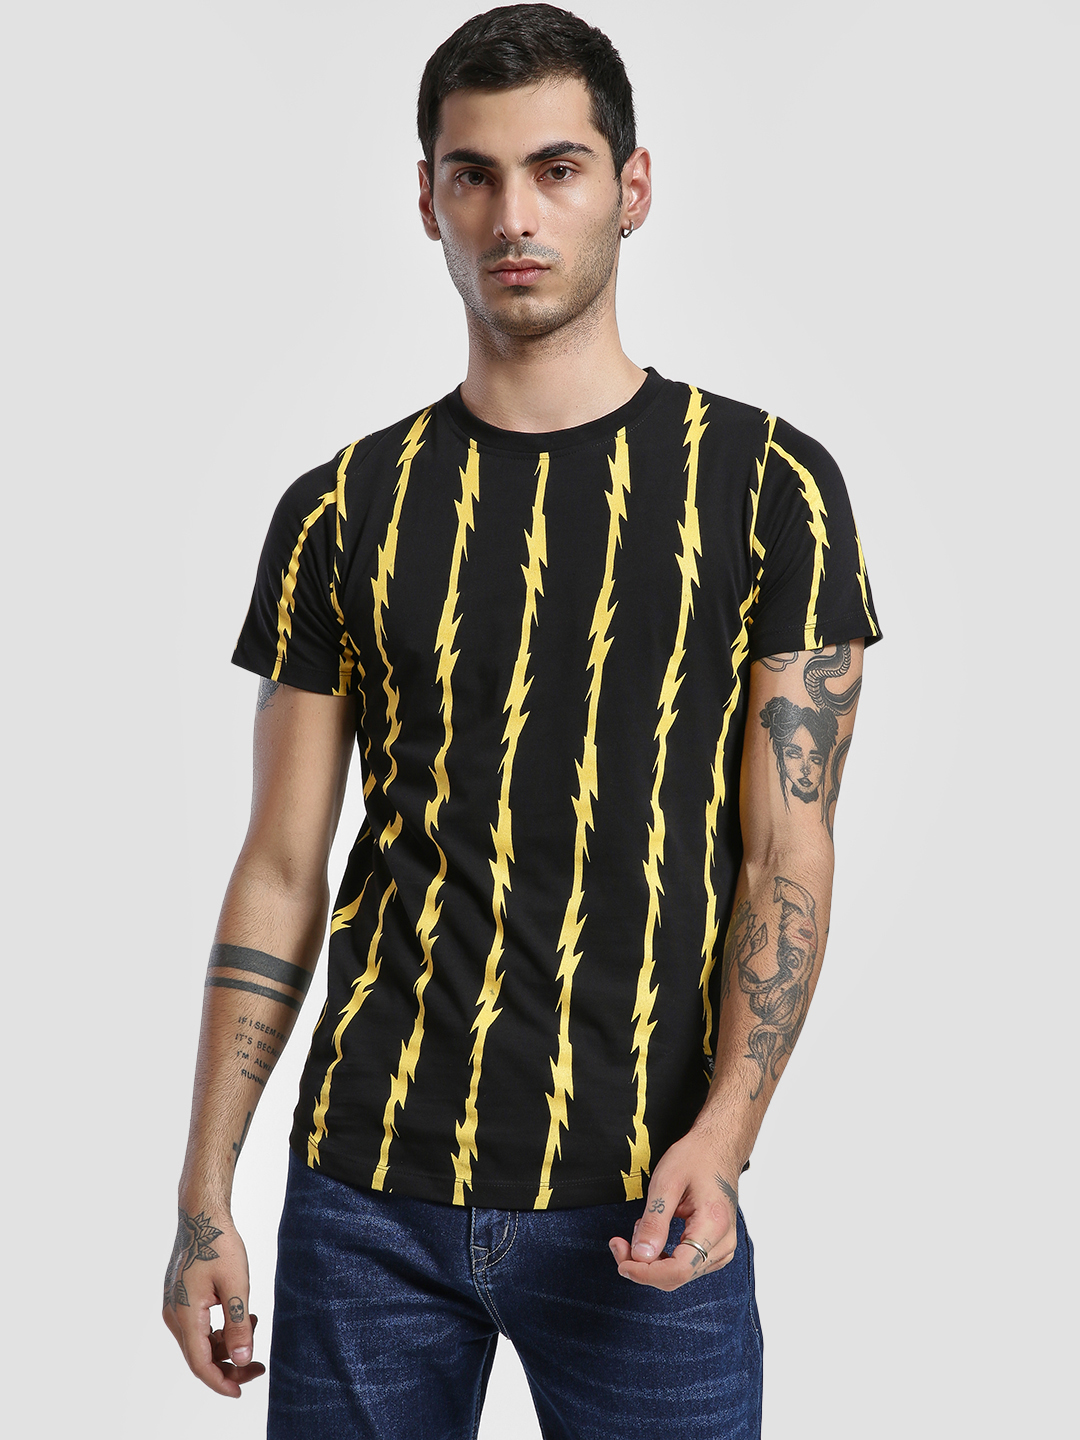 Kultprit Black Thunderbolt Vertical Stripe Print T-Shirt 1